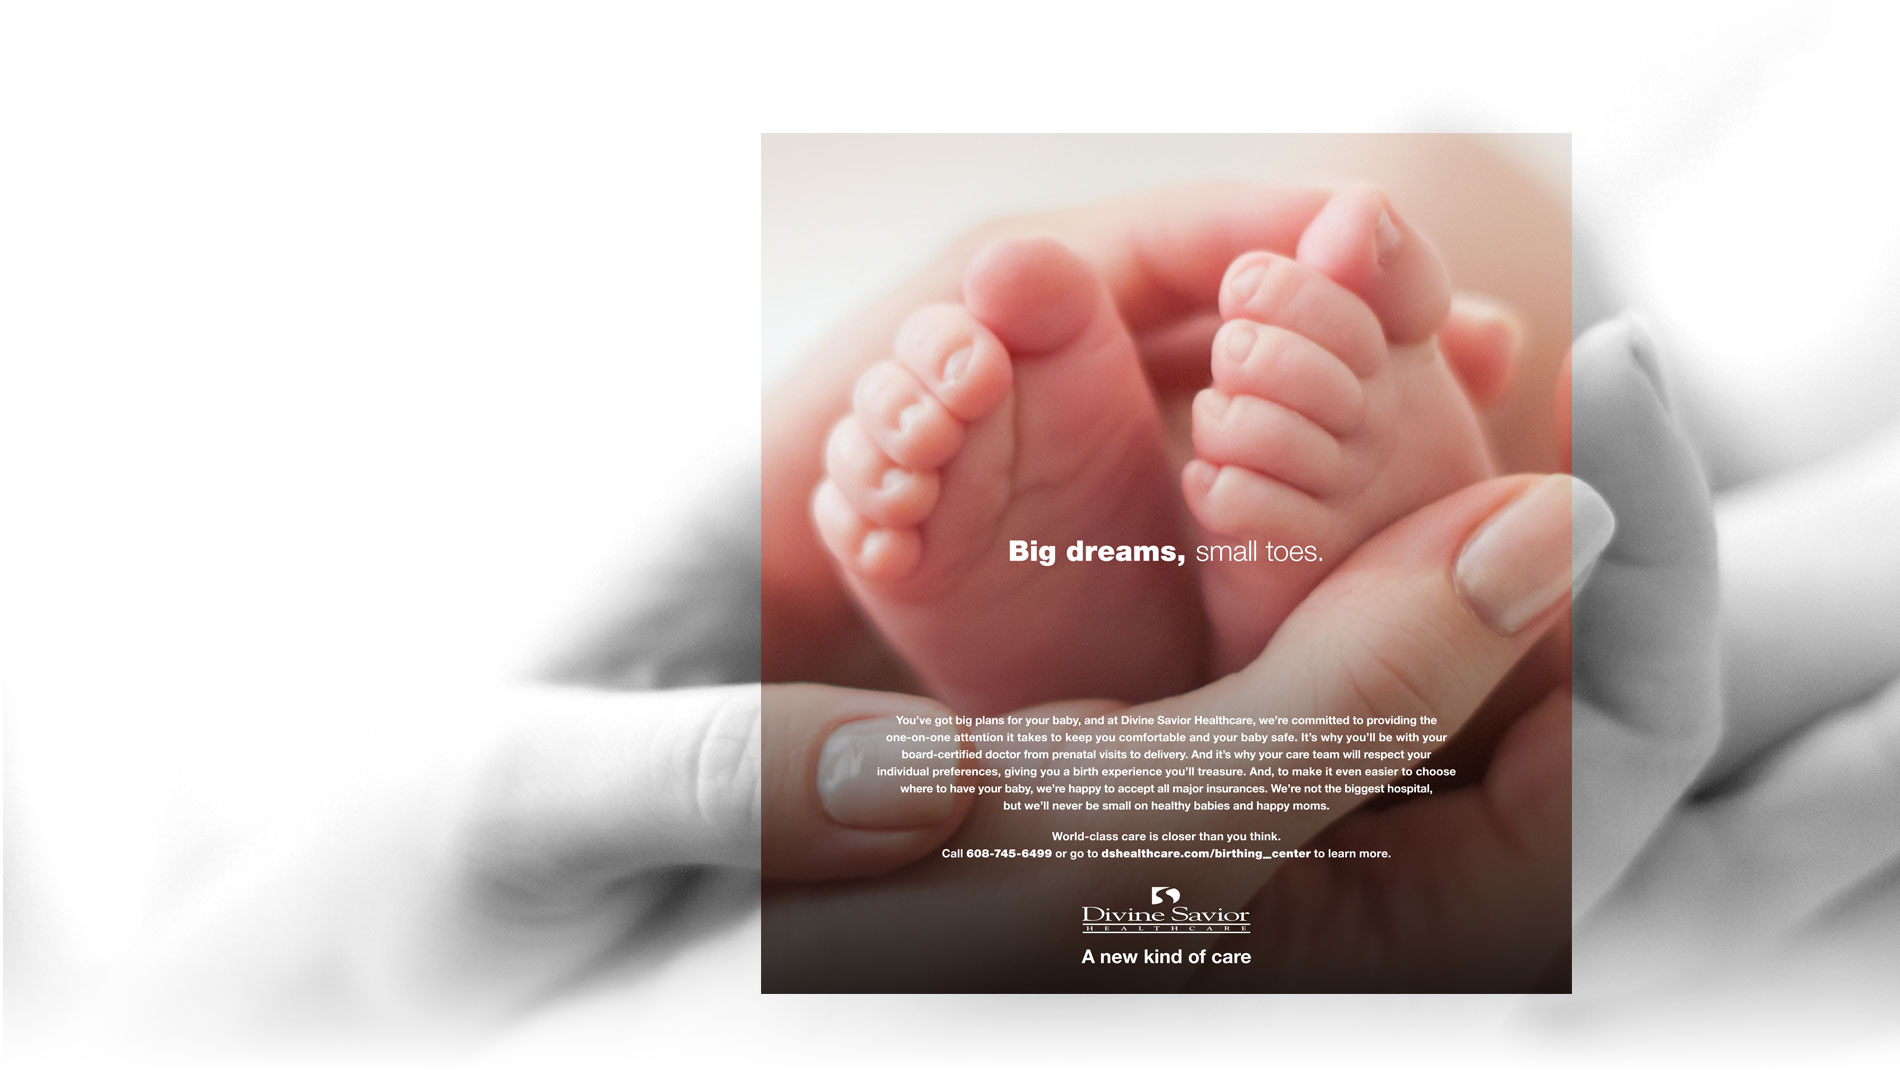 Divine Savior Healthcare print ad featuring a baby's toes being cradled by an adult's hands; big dreams, small toes